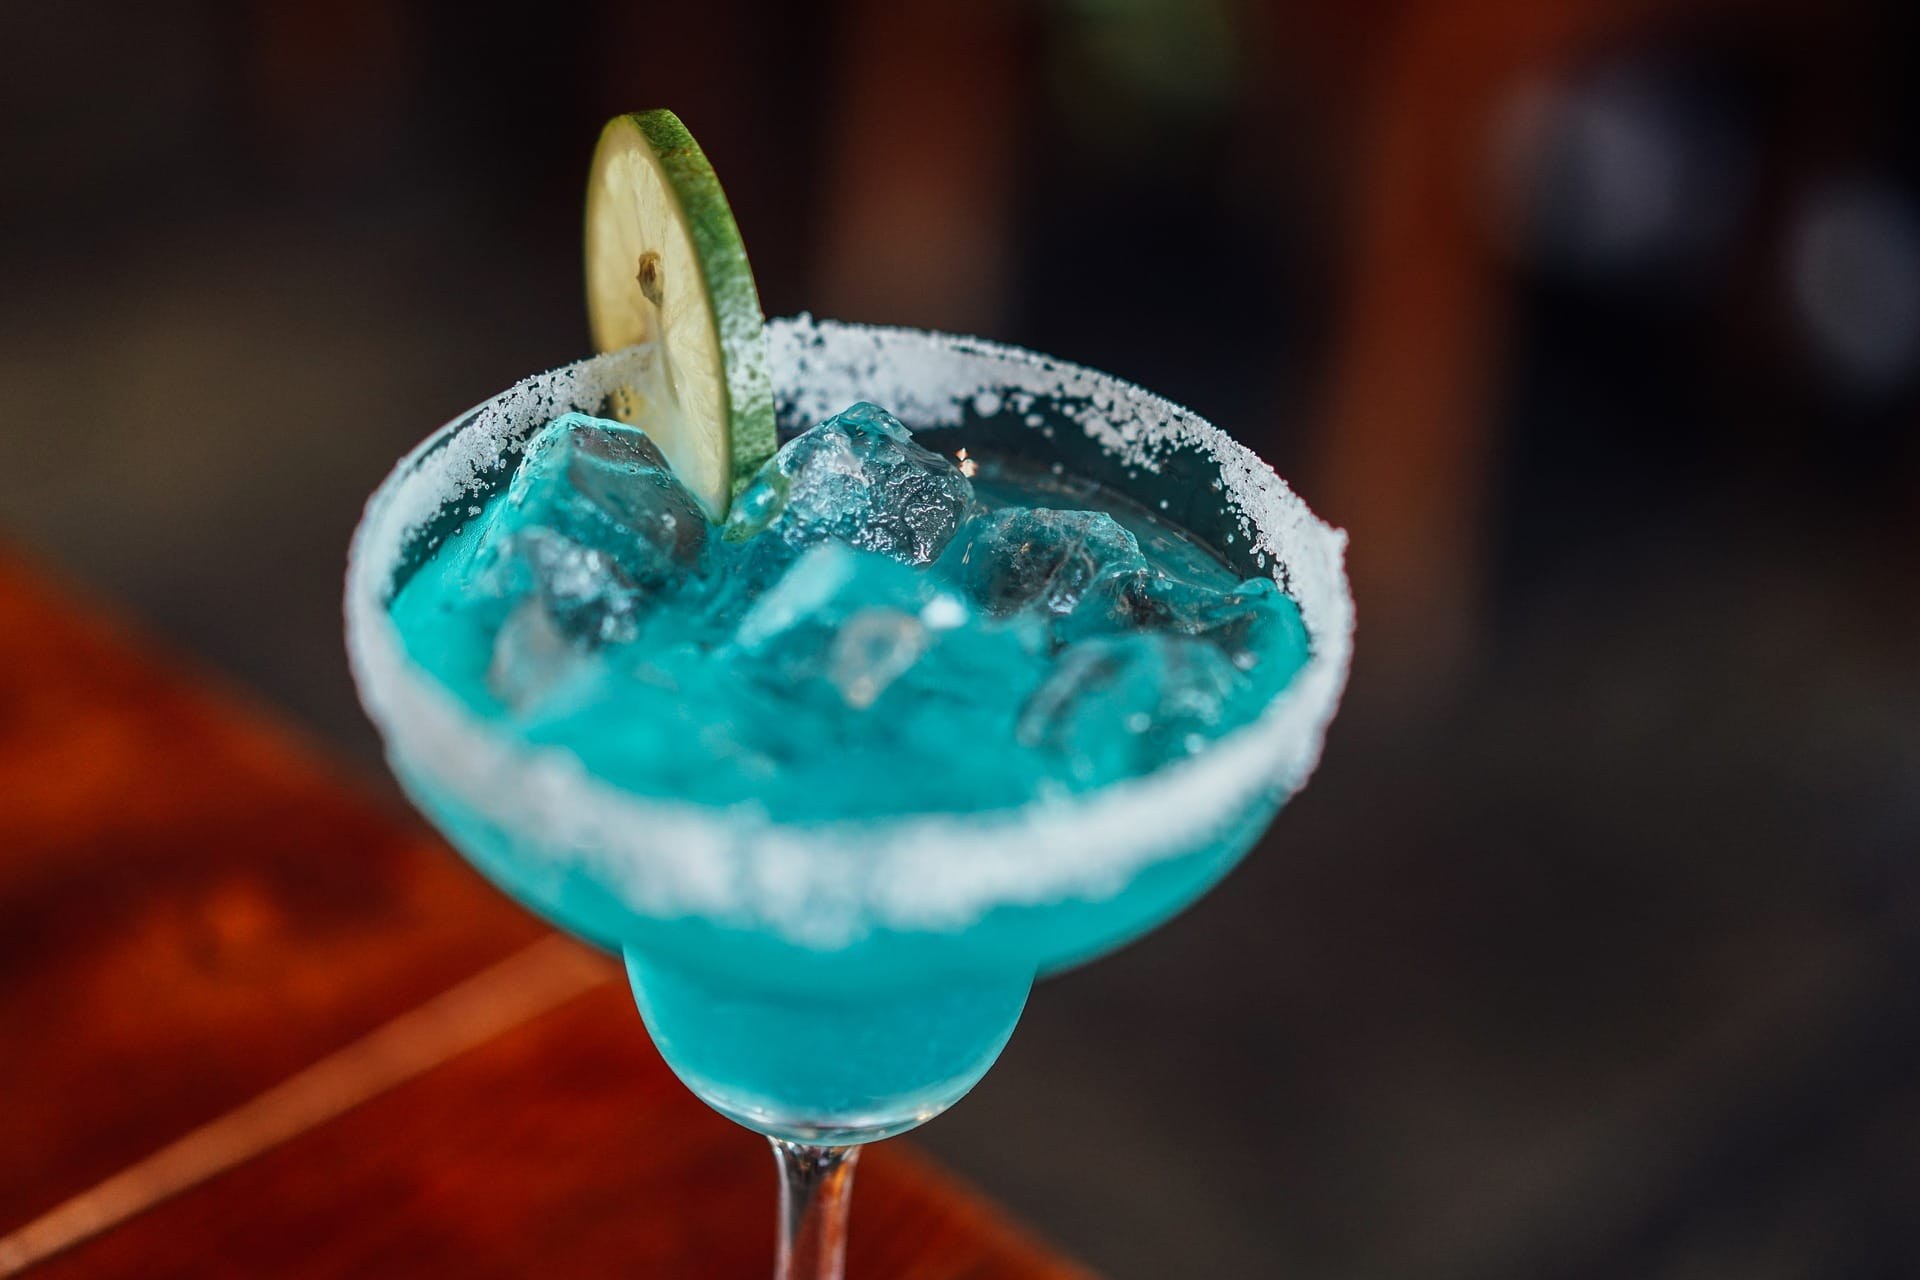 Beautiful blue cocktail filled with ice and with a slice of lime and salt around the glass rimm.